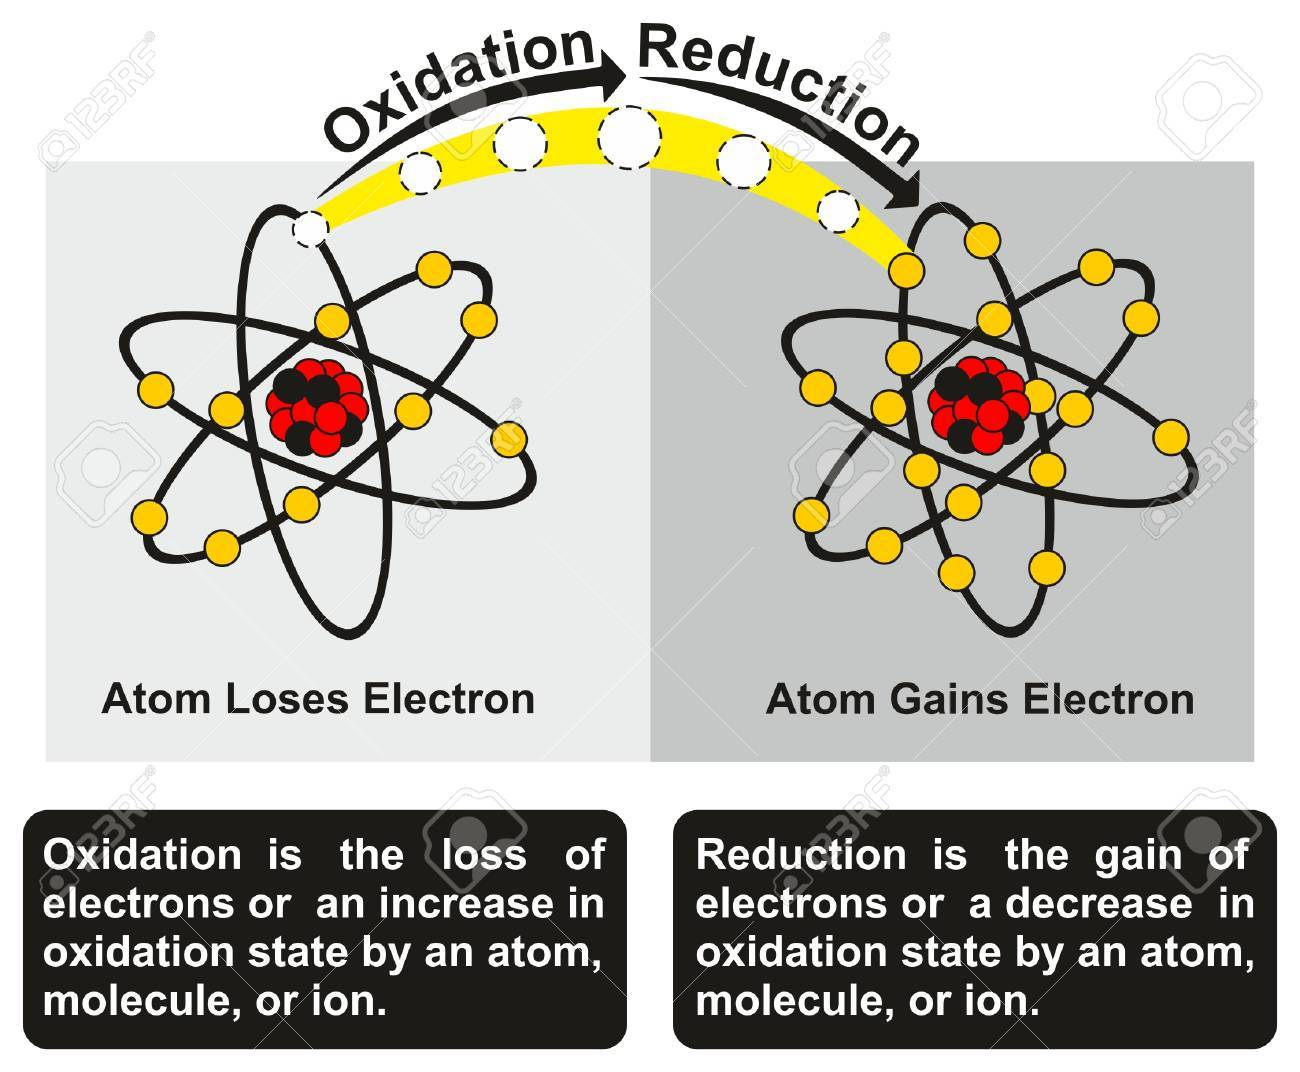 hight resolution of oxidation and reduction process infographic diagram with an example of redox reaction between two atoms one